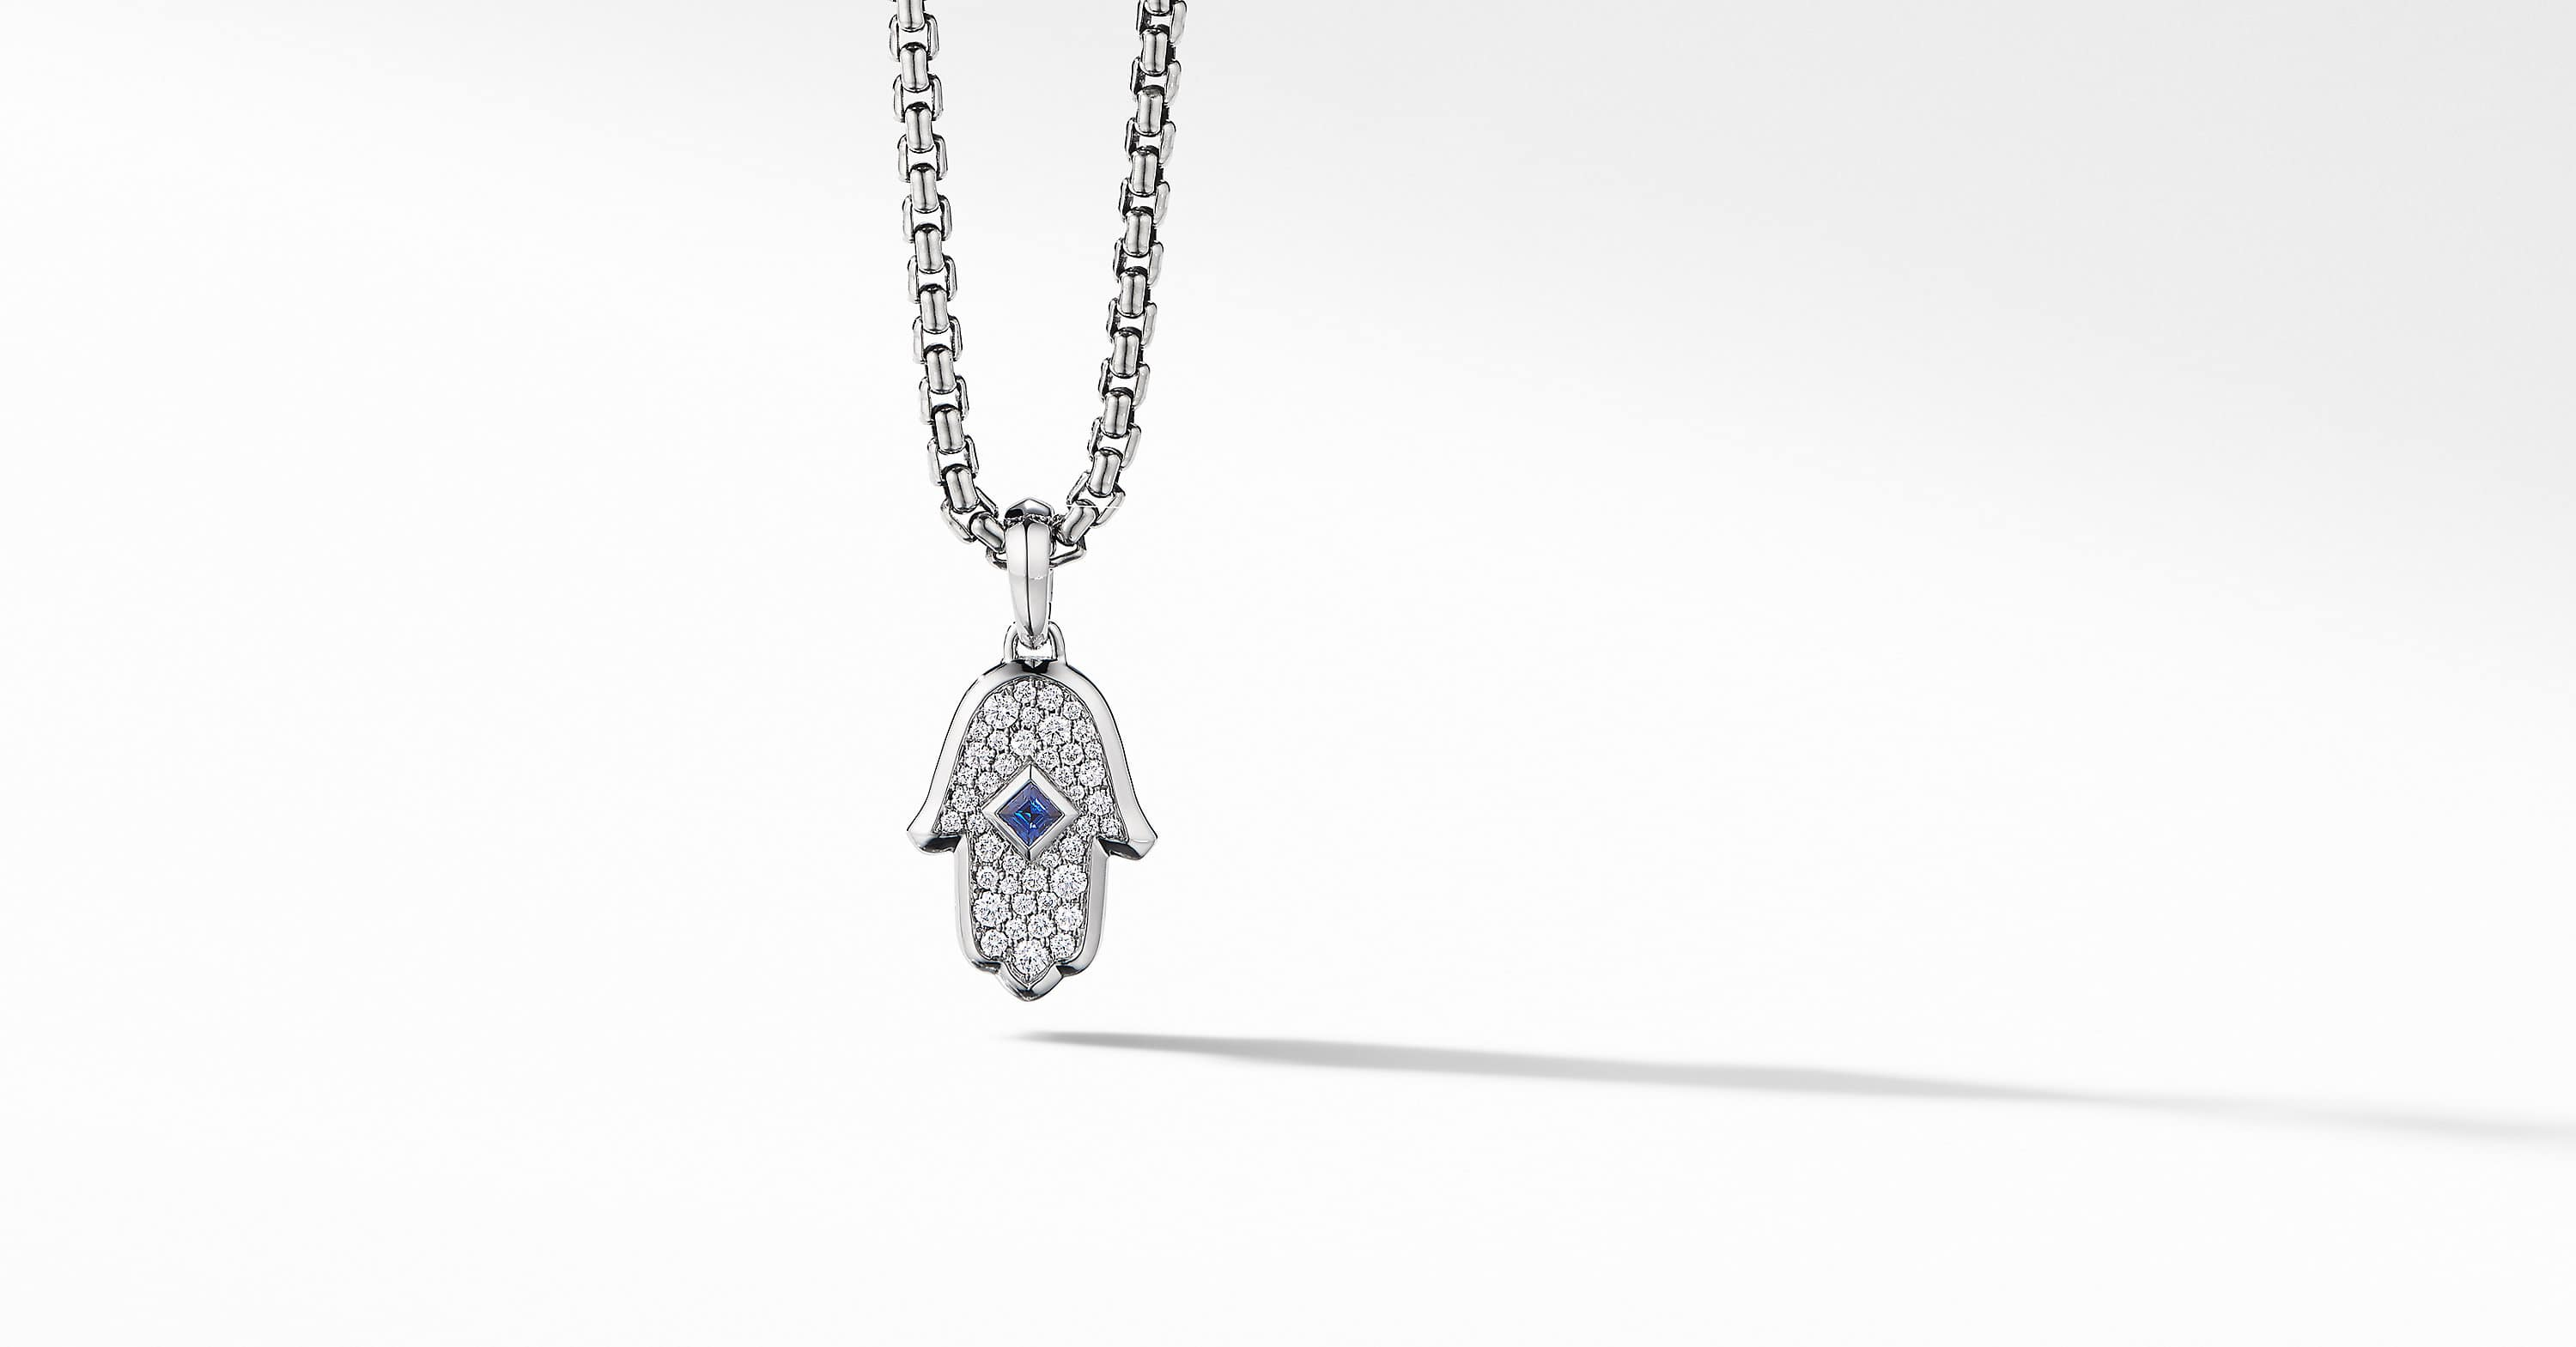 Hamsa Amulet in 18K White Gold with Pavé